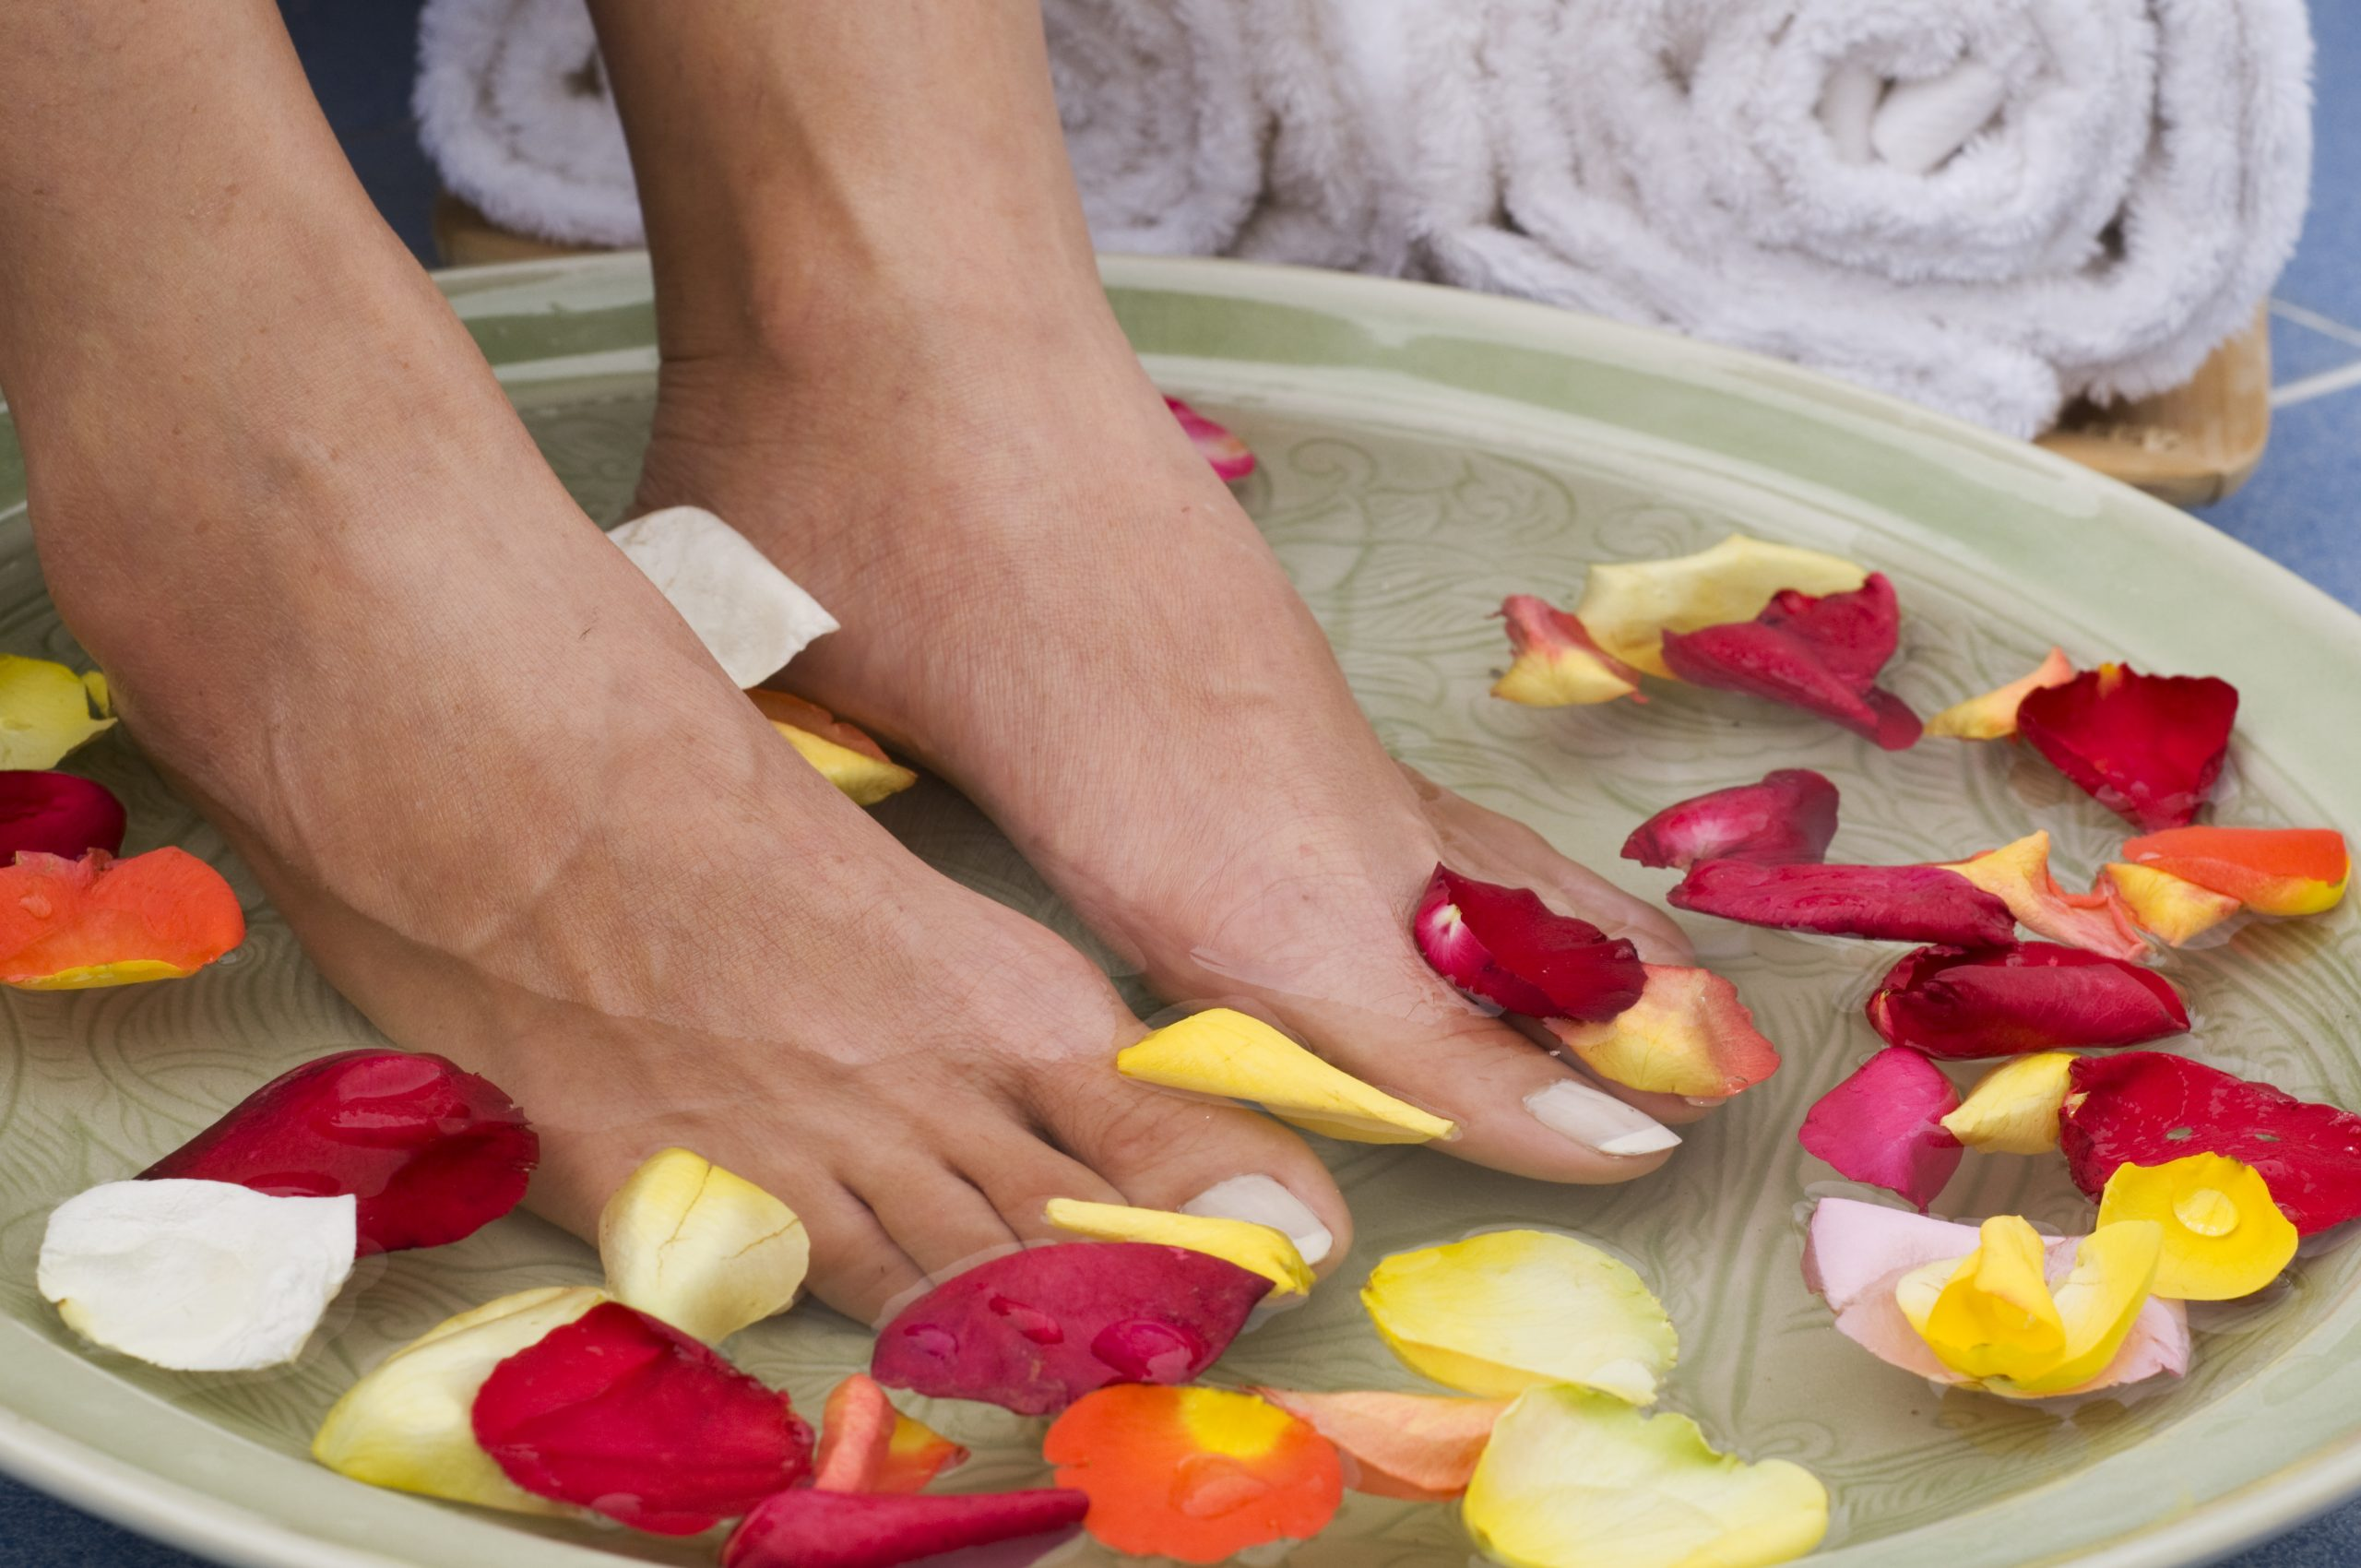 Image of person soaking their feet